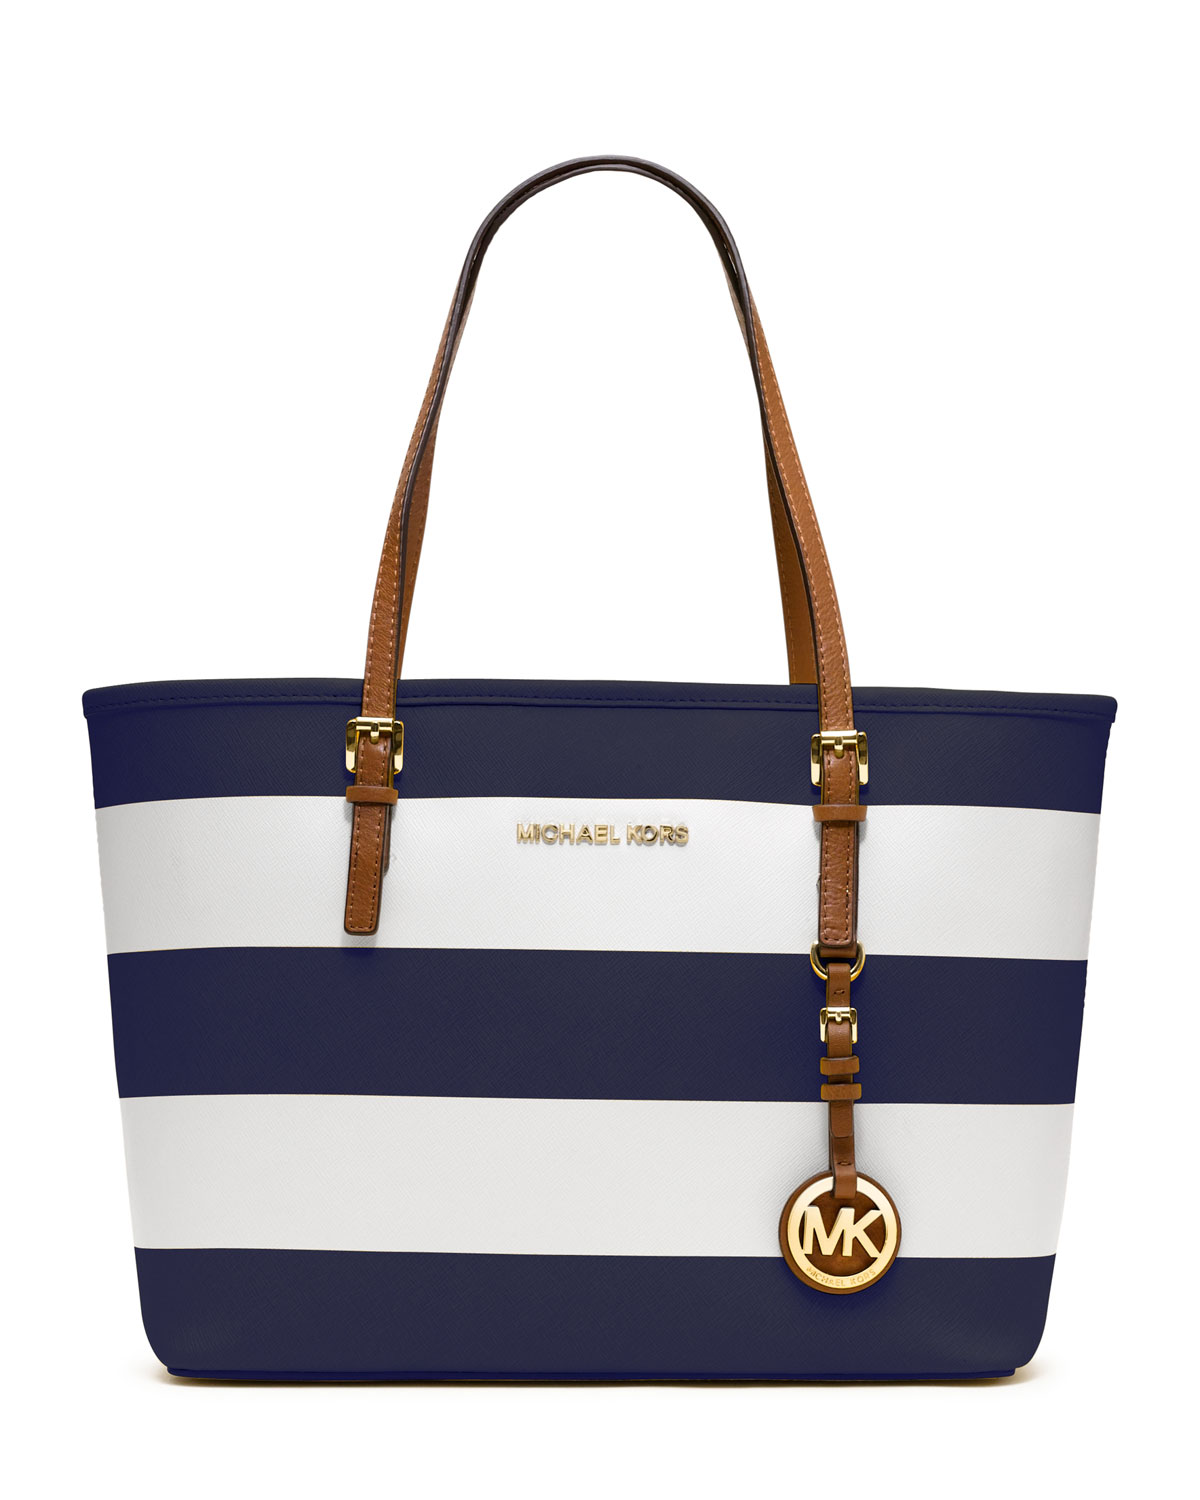 83750acc7270 ... france lyst michael kors small jet set striped travel tote in blue  3bf79 378eb